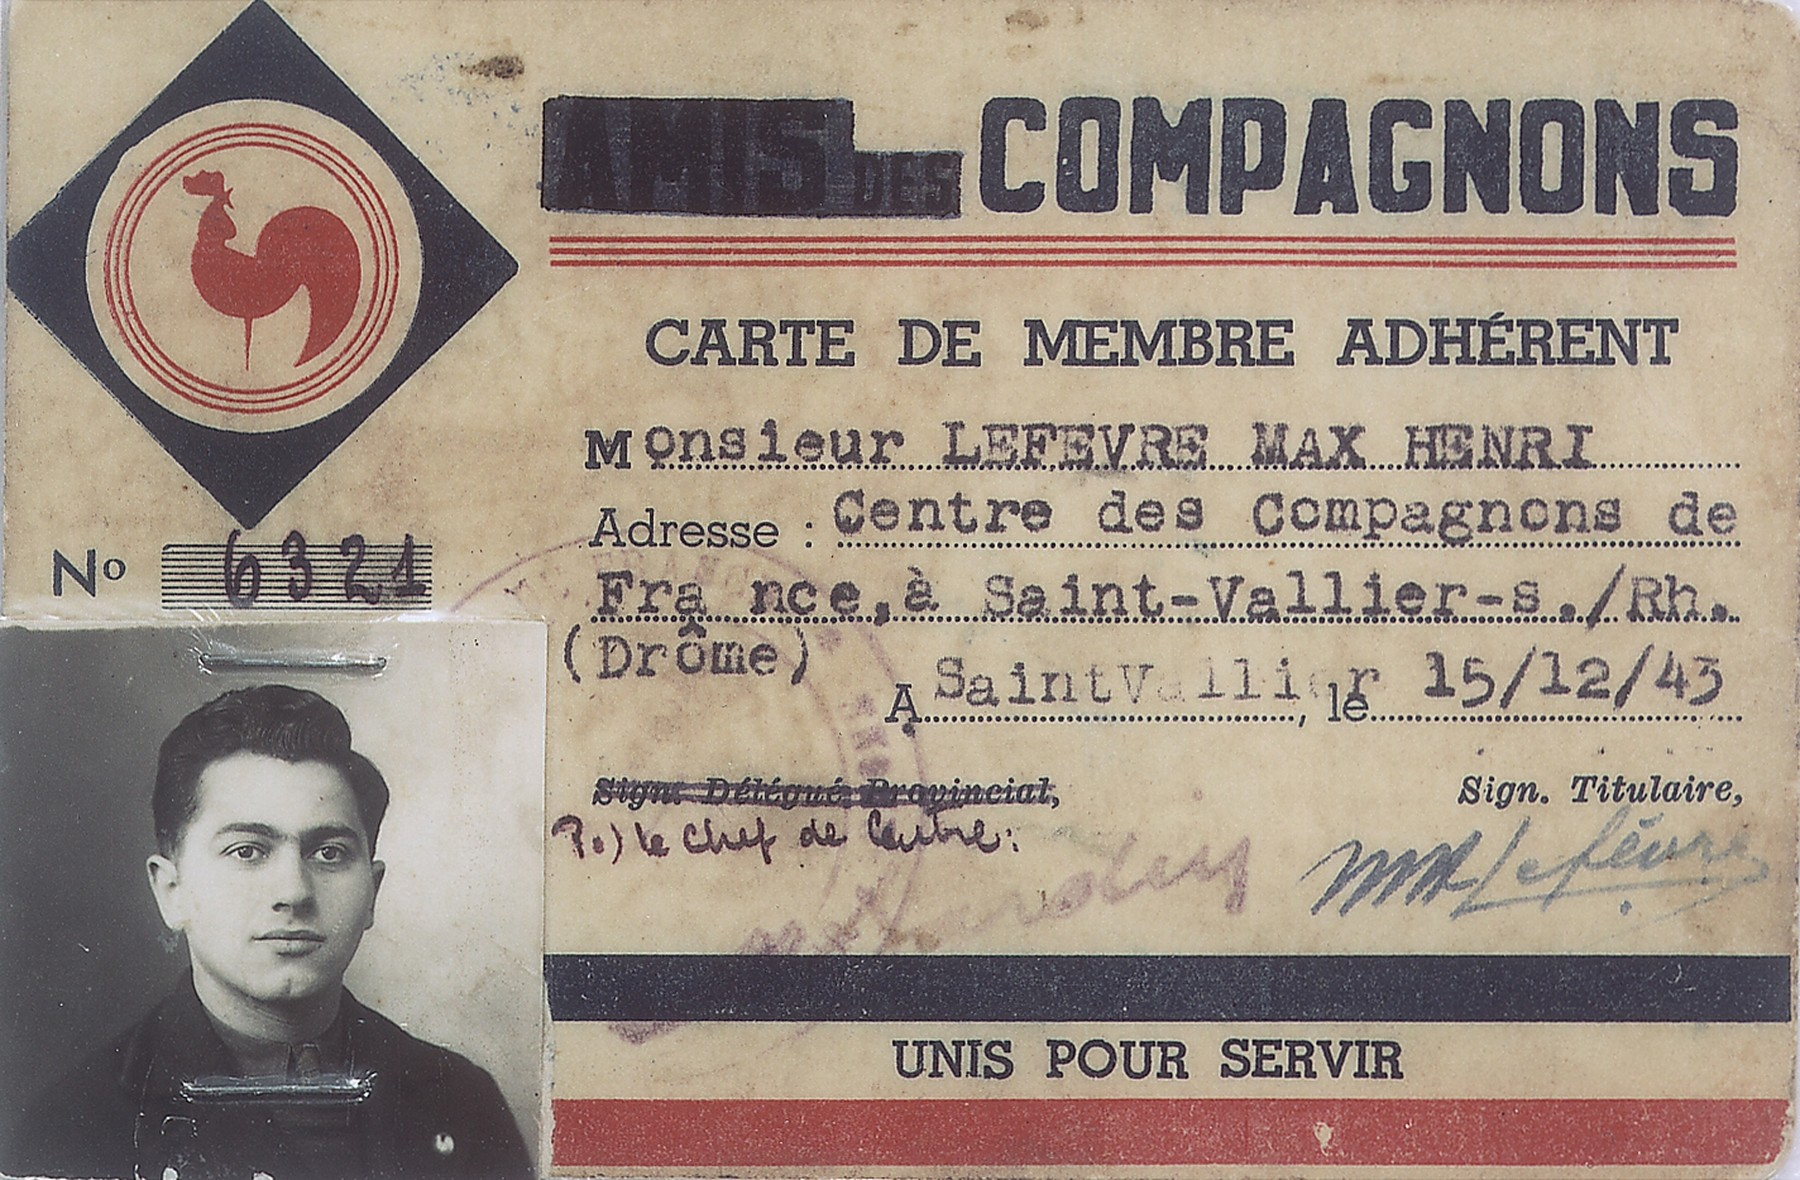 False membership card in the Vichy paramilitary youth organization, Compagnons de France that belonged to Leo Bretholz, an Austrian Jew living in hiding under the name of Max Lefevre.